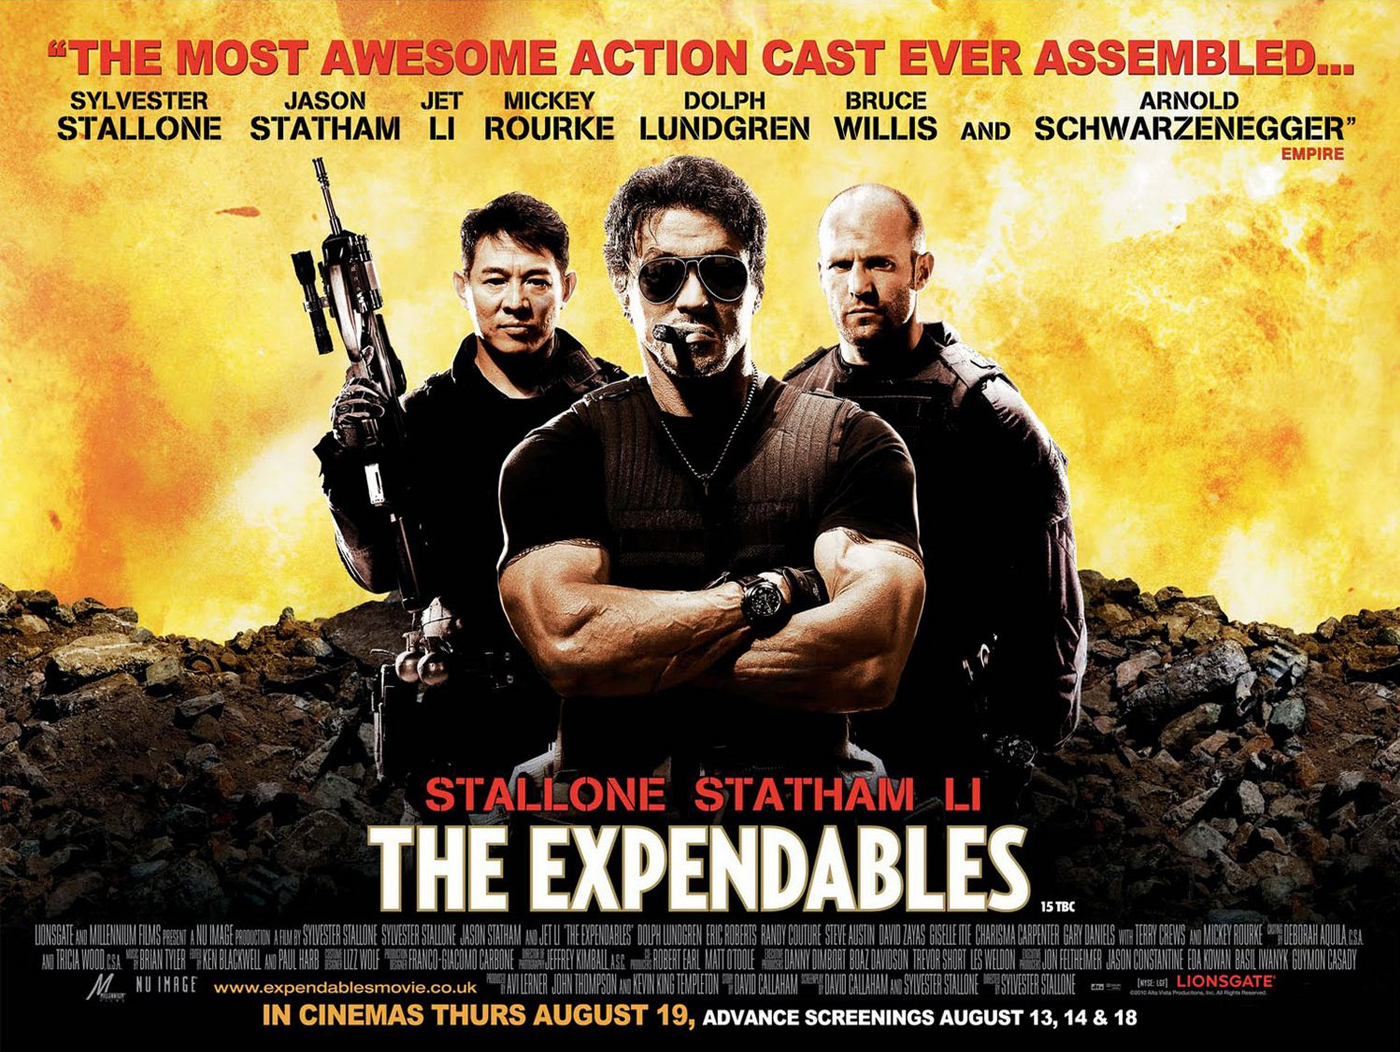 Words worth a lot: Top Action Movie of Hollywood